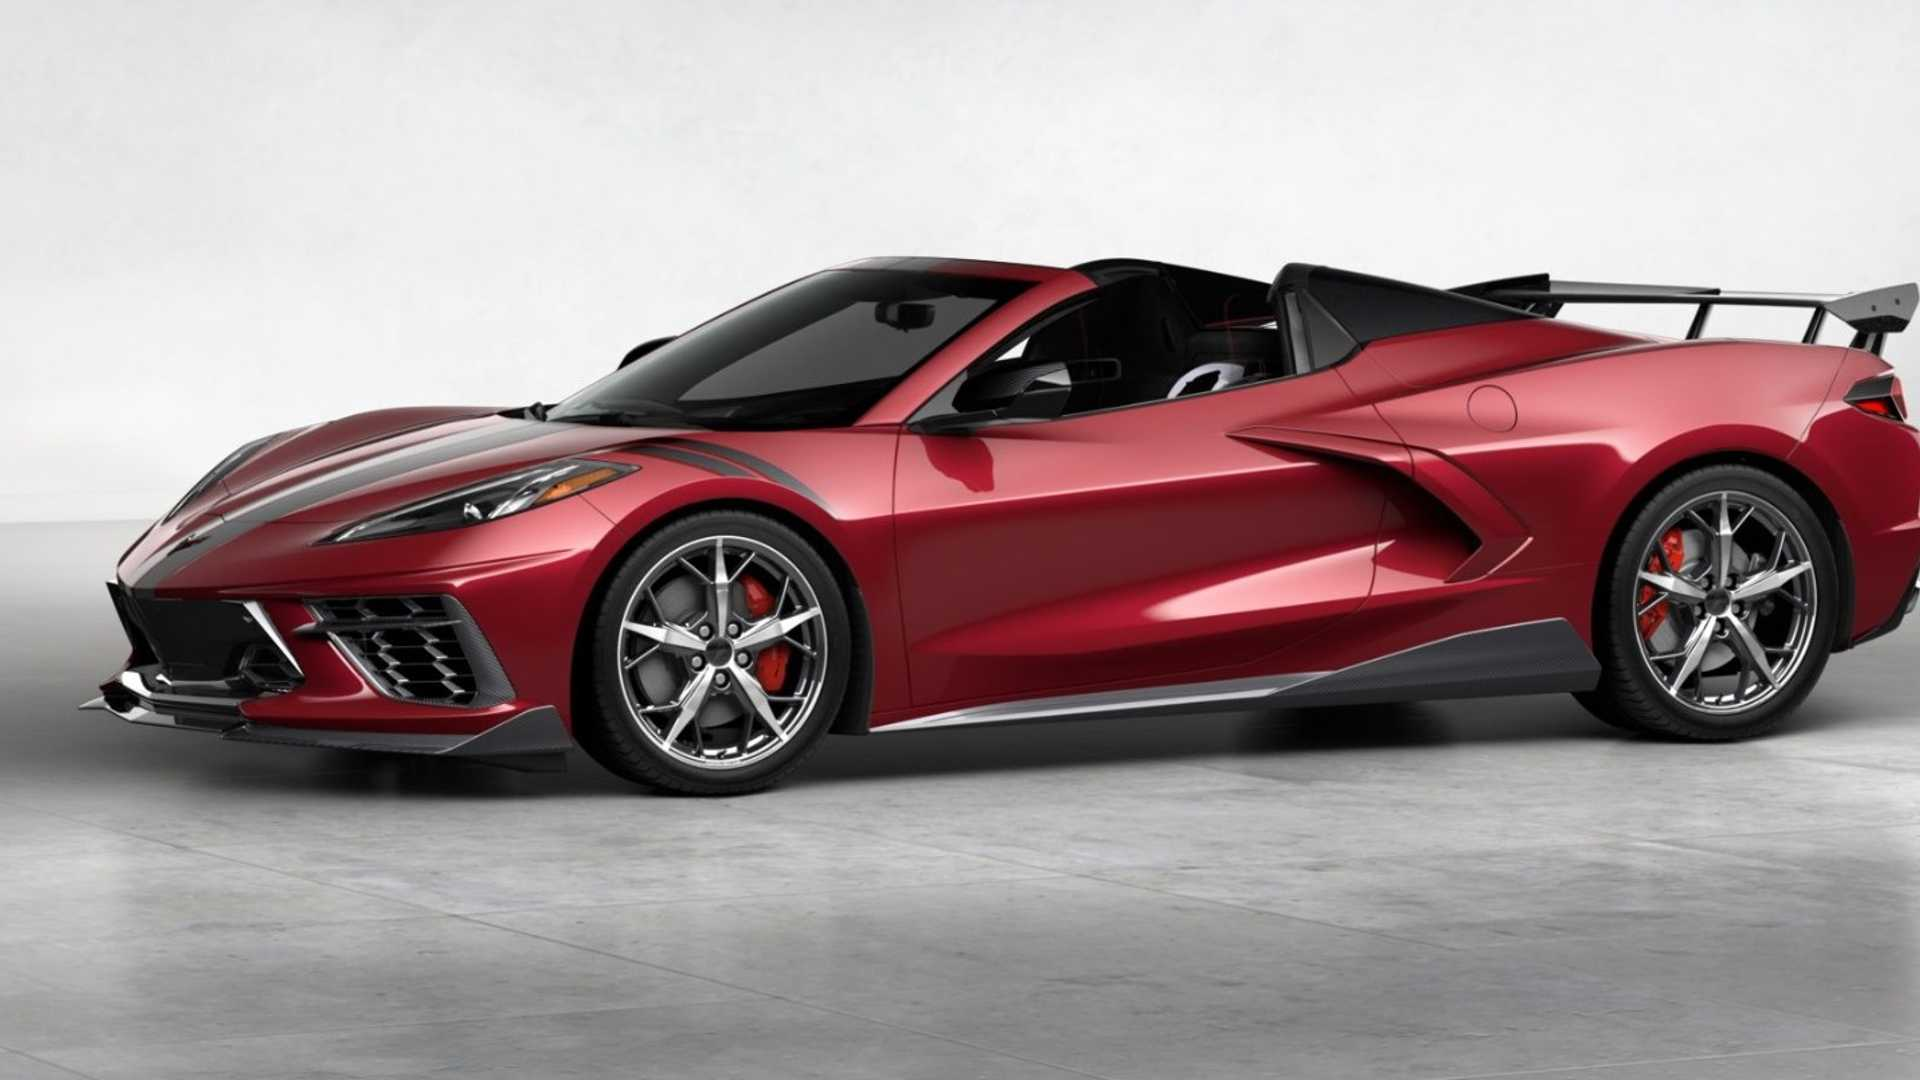 Most Expensive 2020 Chevy Corvette Convertible Costs $113,955